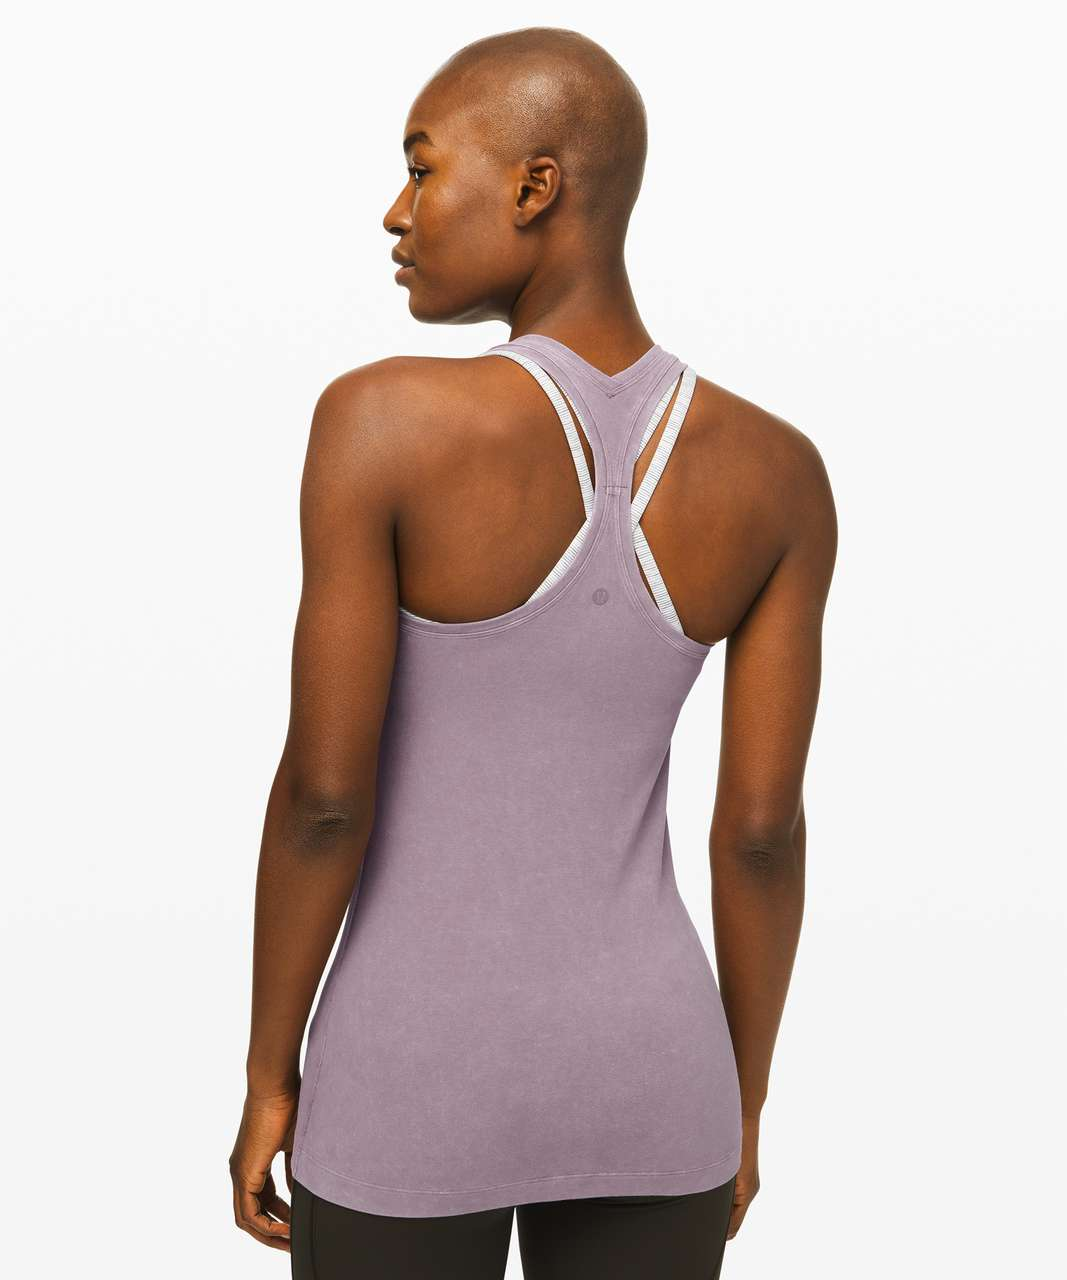 Lululemon Cool Racerback II *Dye - Washed Frosted Mulberry